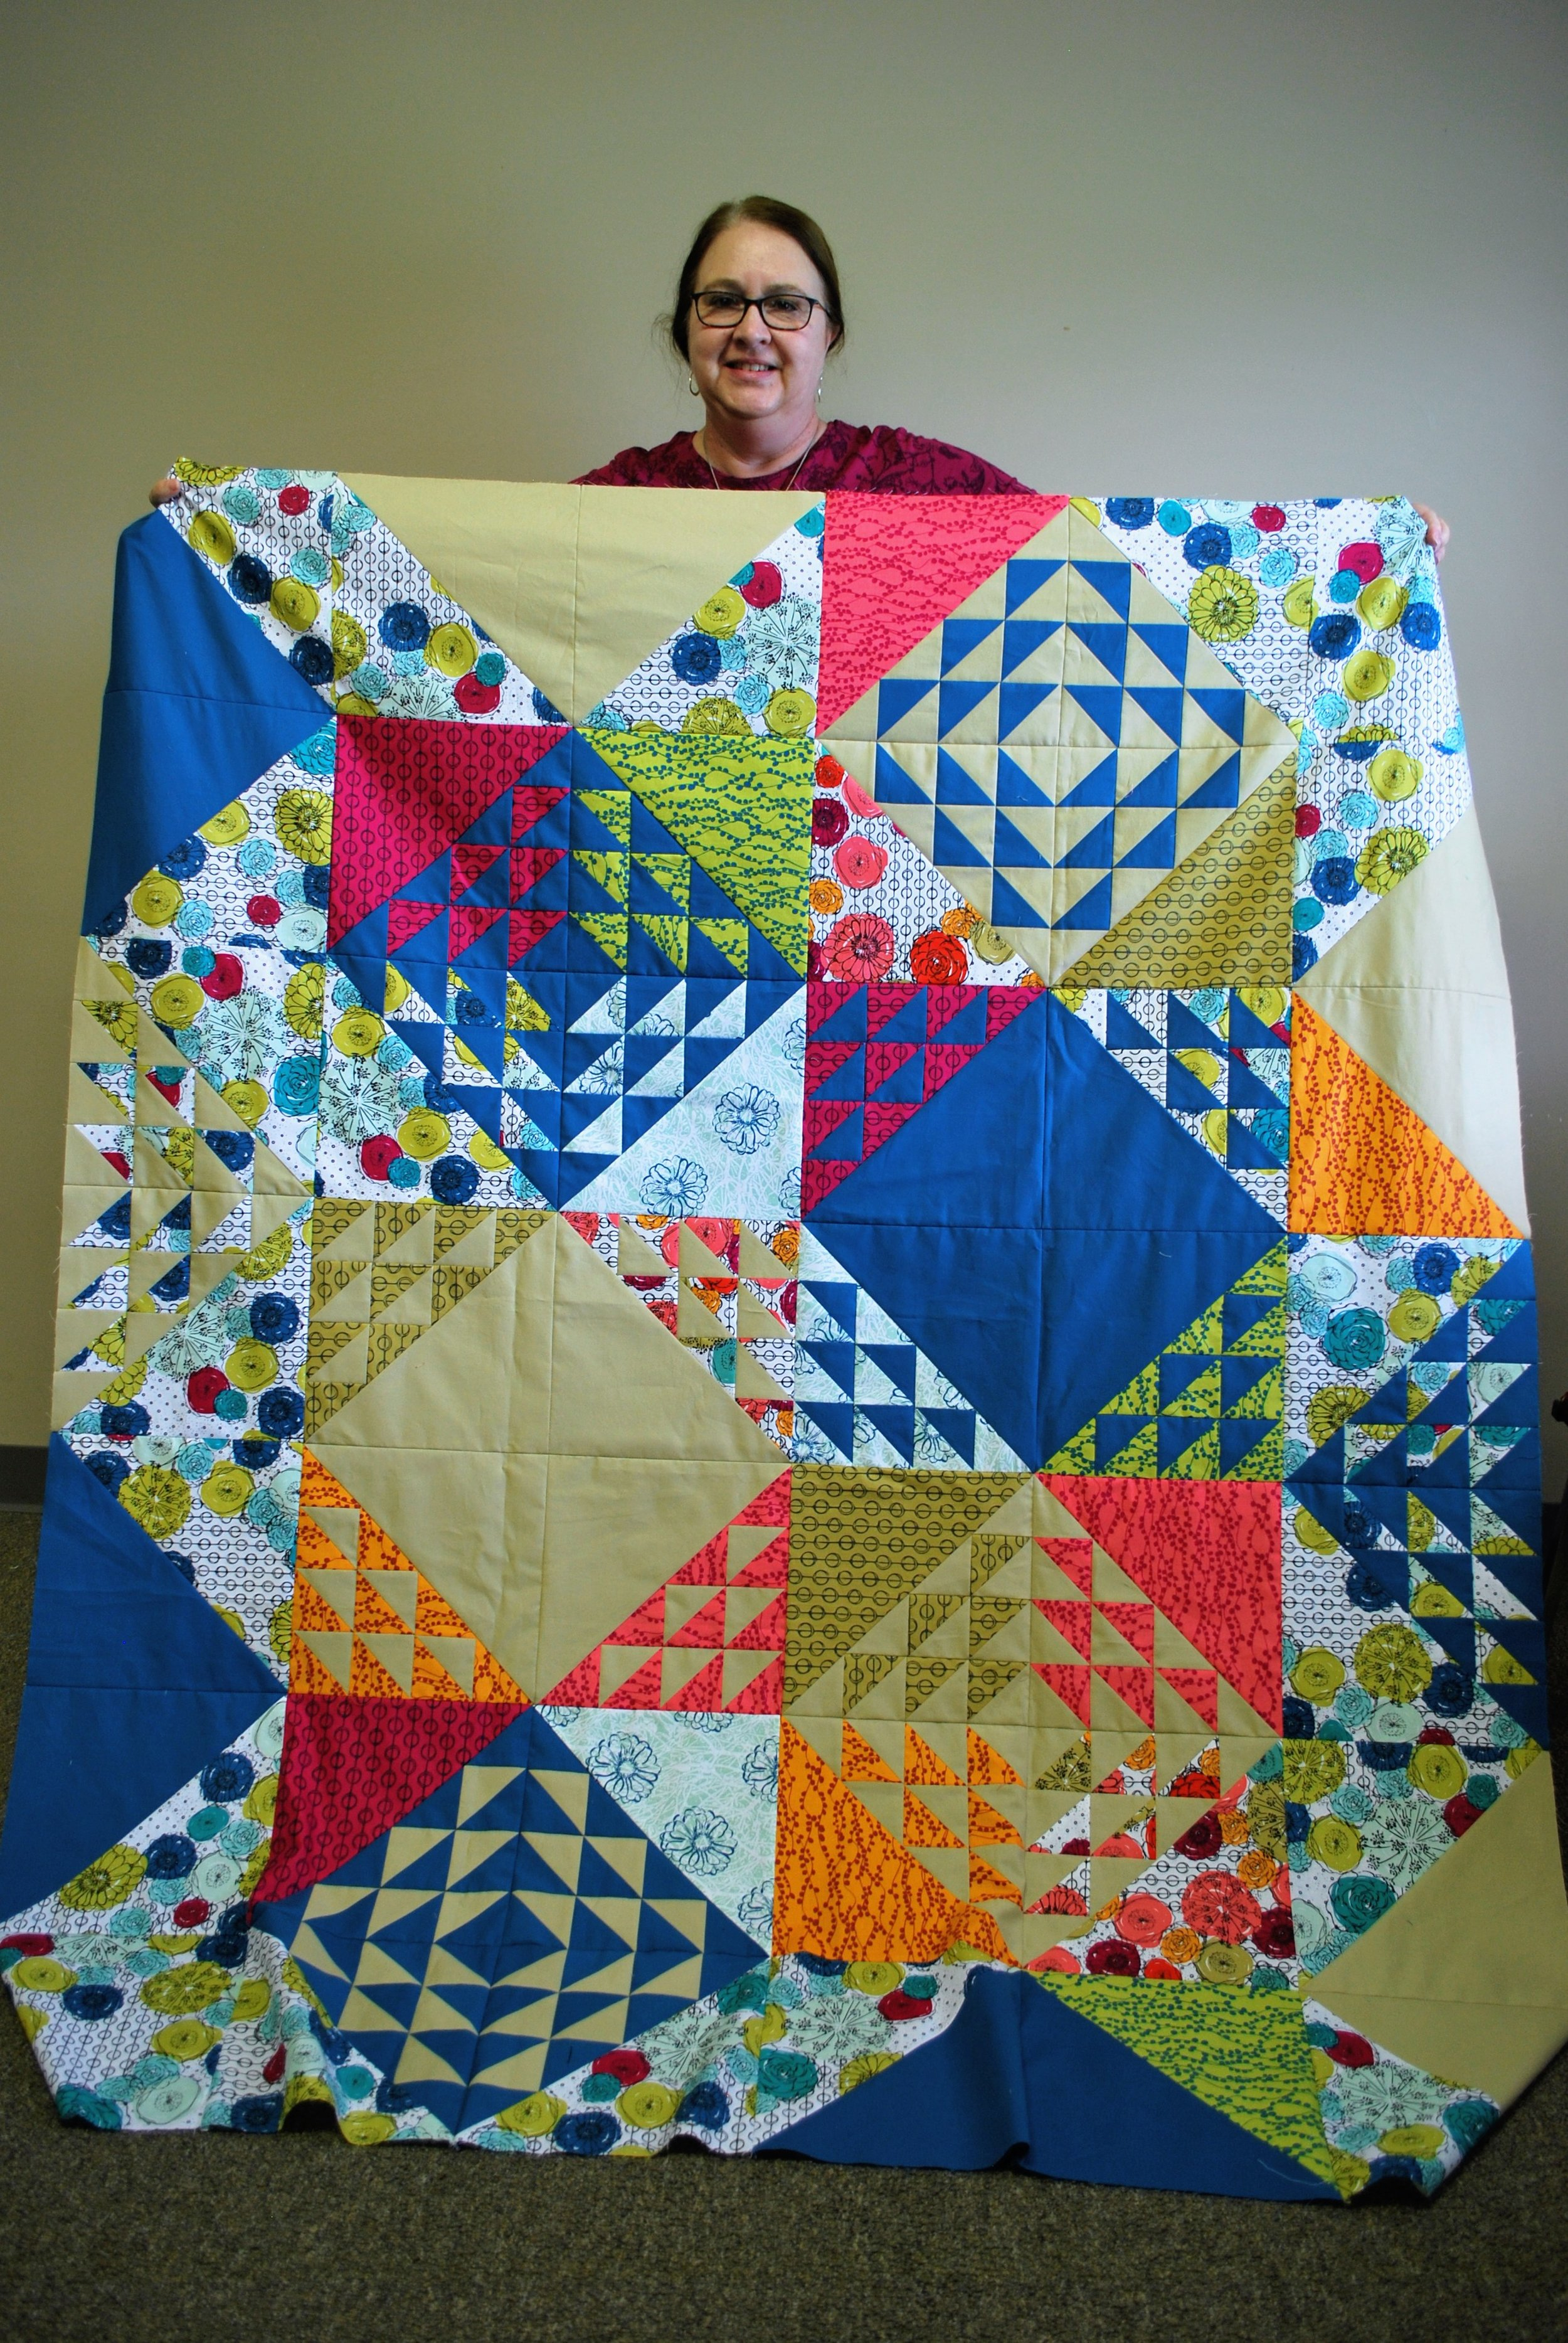 Quilt by Ava Moore